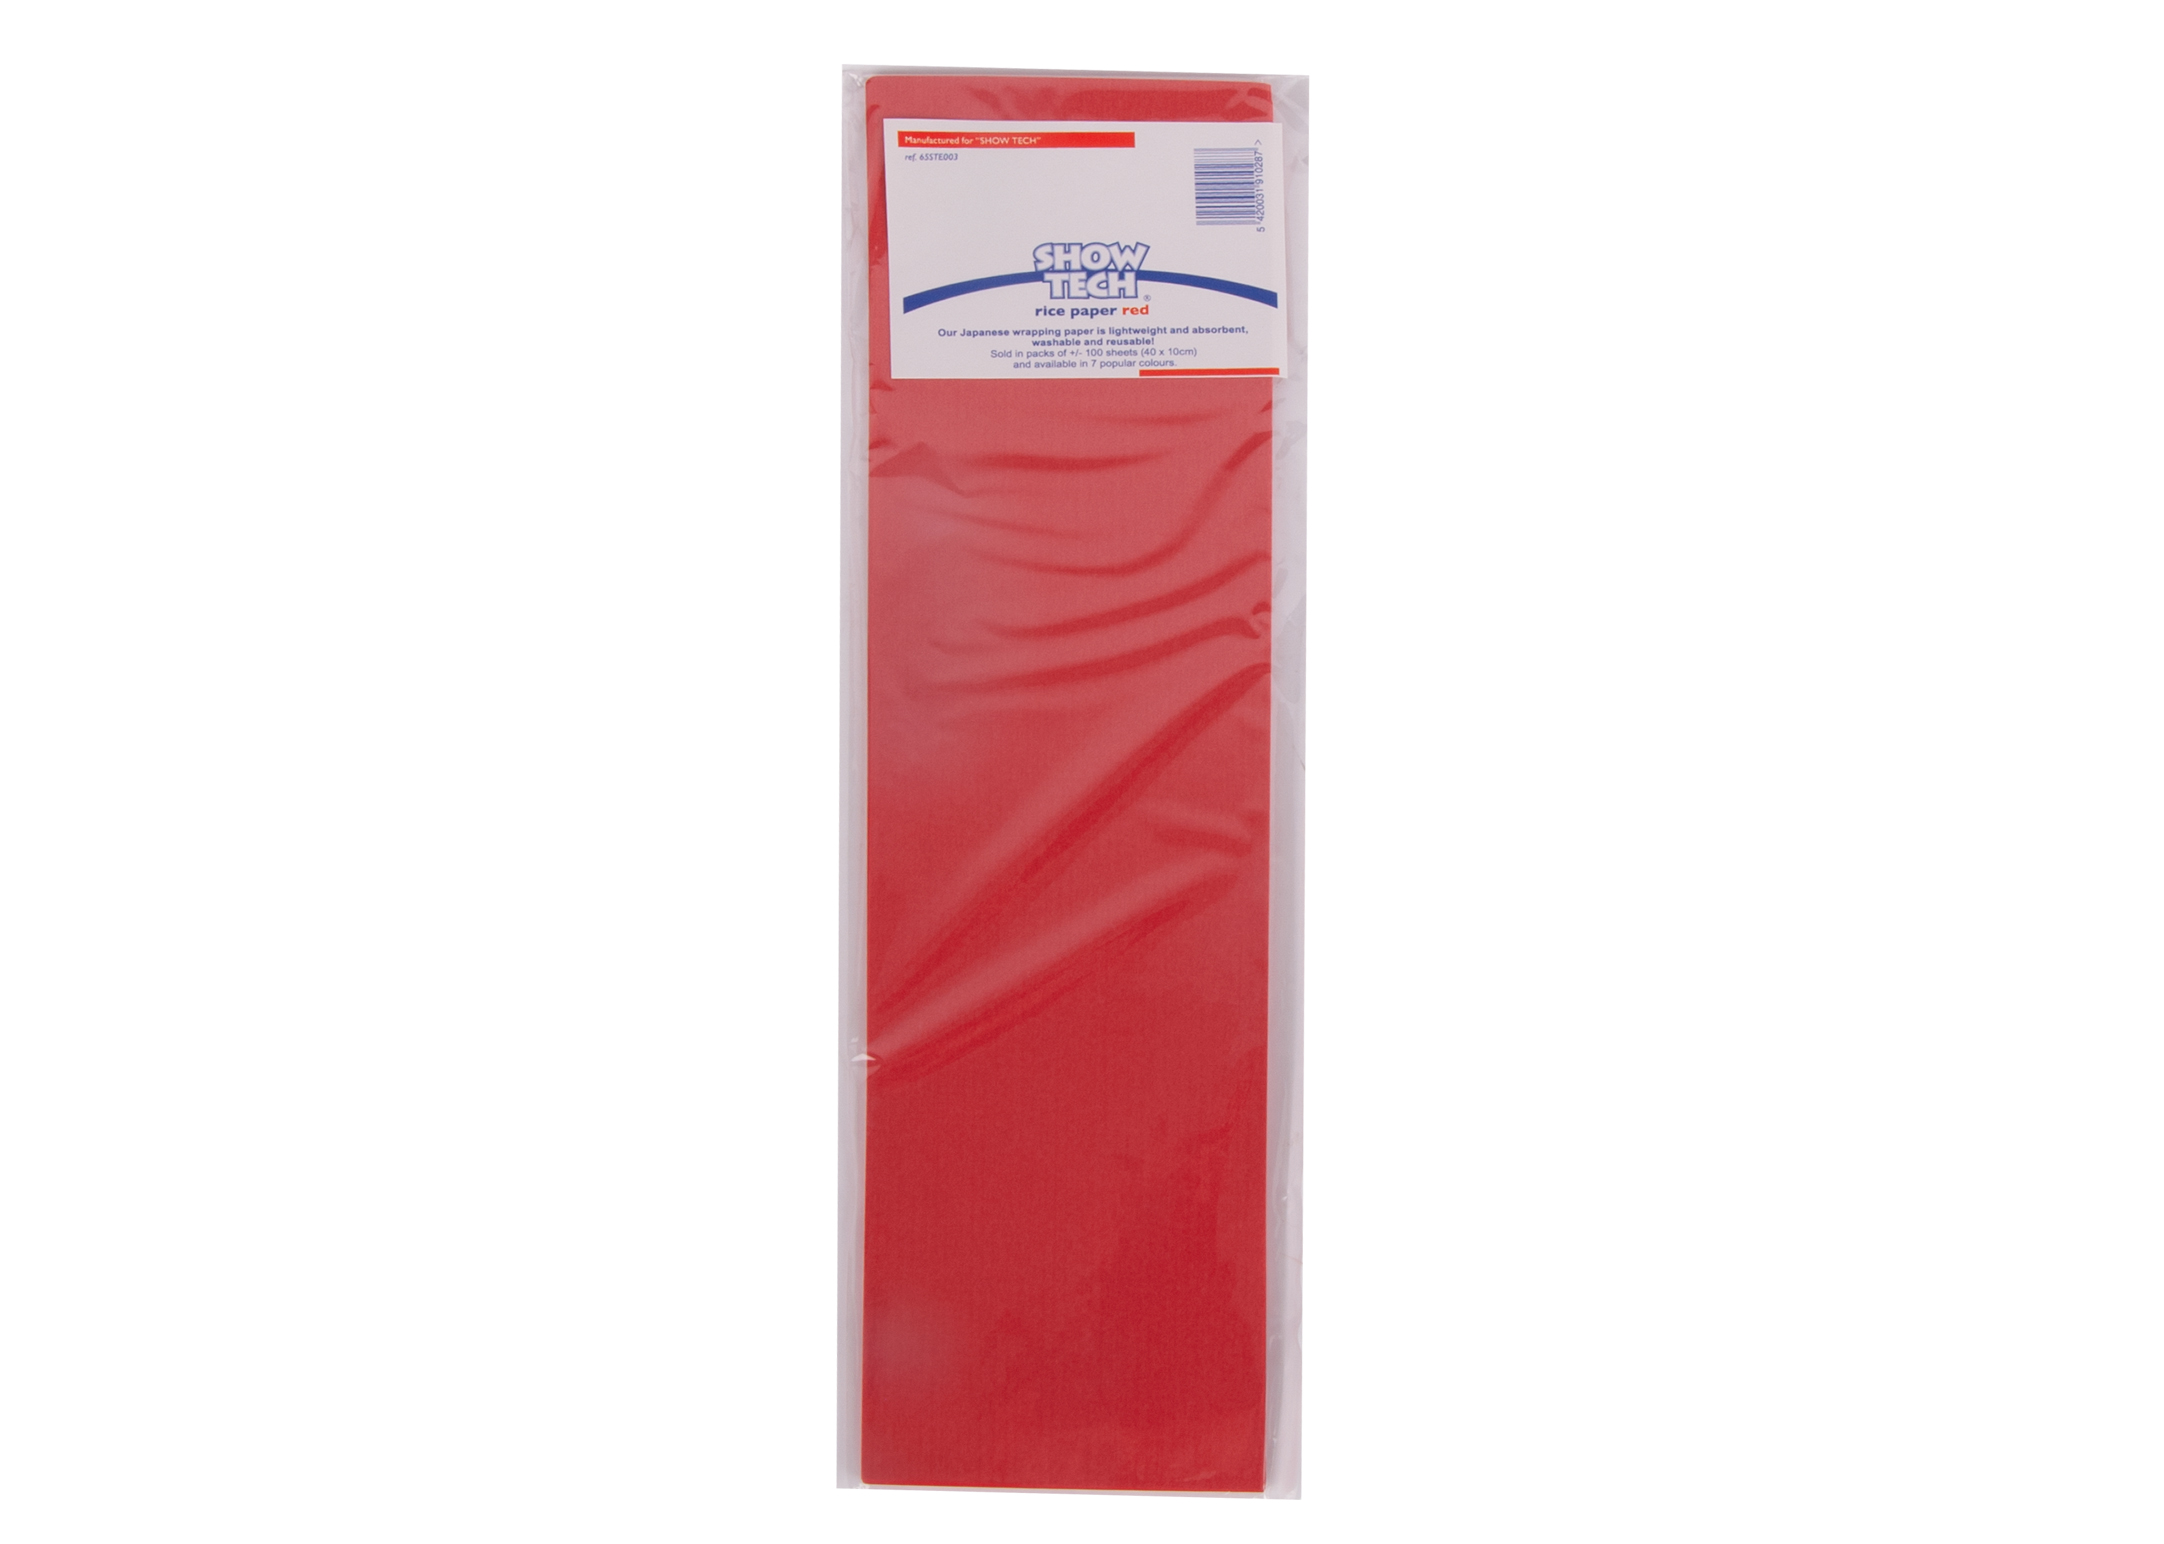 Show Tech Rice Paper Red 100 pcs Wrapping Paper